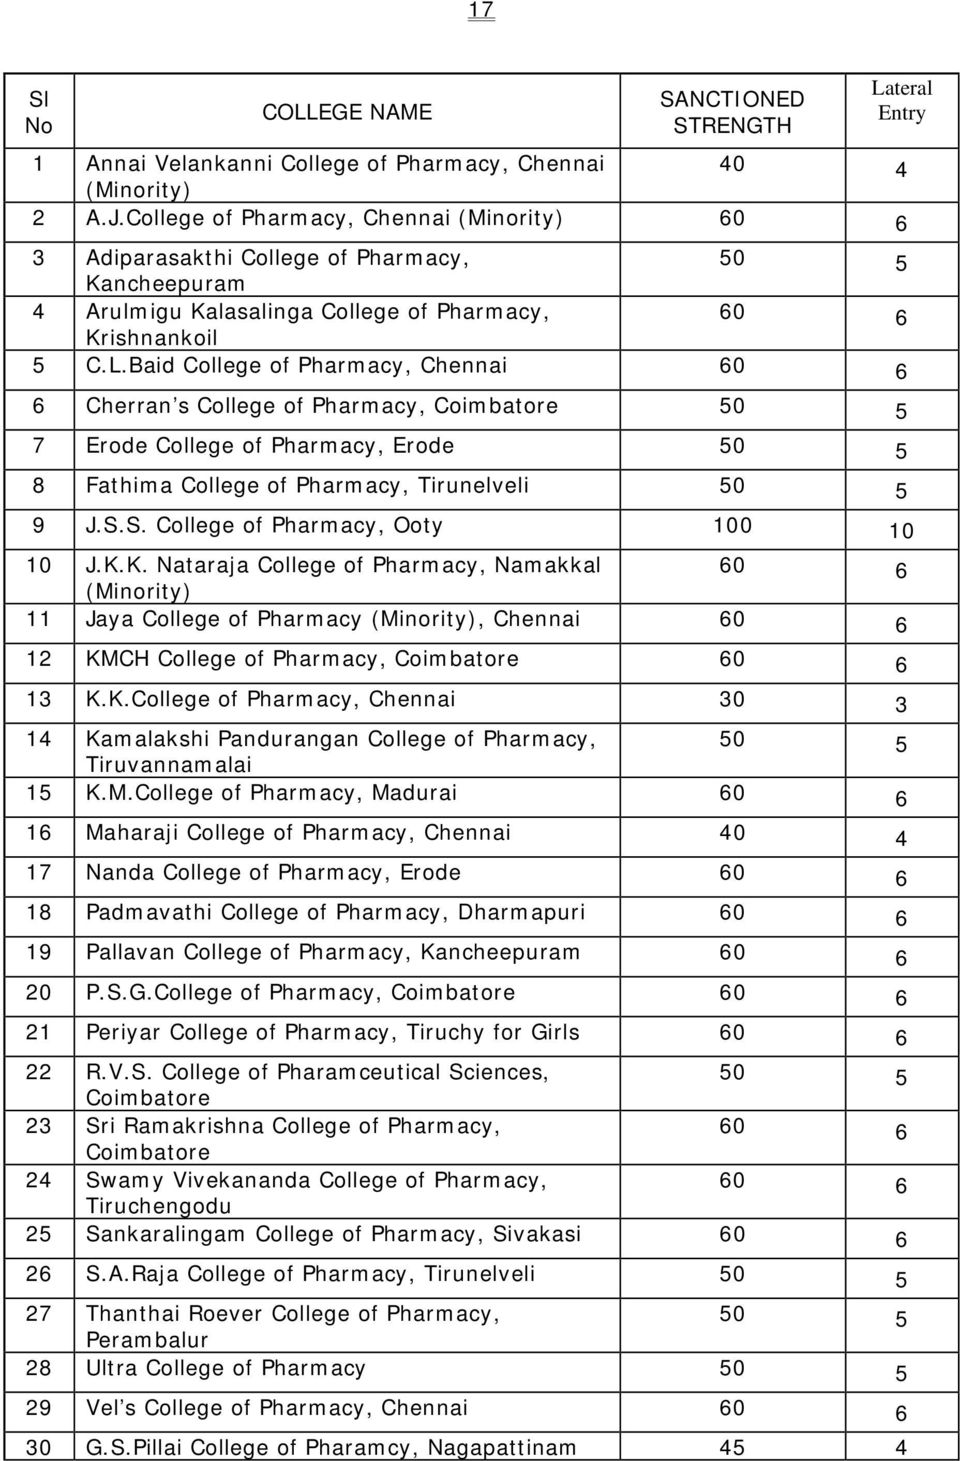 Baid College of Pharmacy, Chennai 60 6 6 Cherran s College of Pharmacy, Coimbatore 50 5 7 Erode College of Pharmacy, Erode 50 5 8 Fathima College of Pharmacy, Tirunelveli 50 5 Lateral Entry 9 J.S.